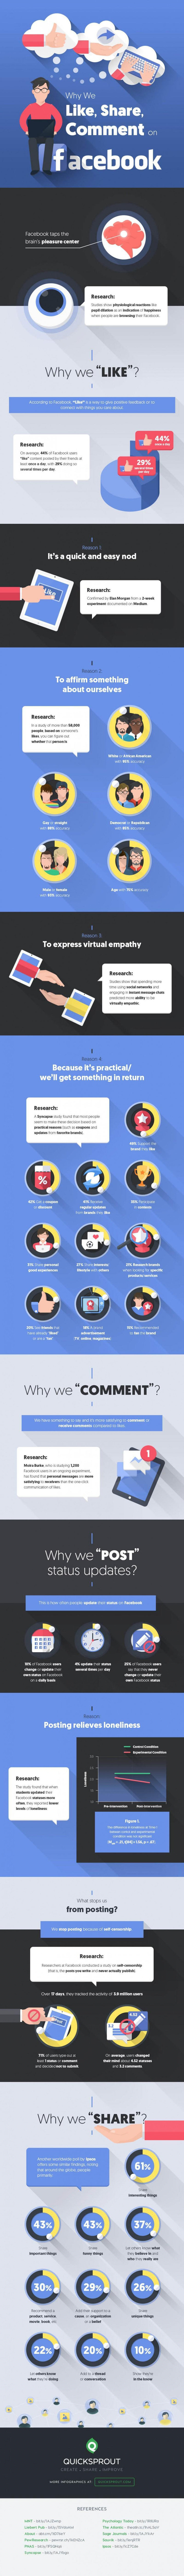 why-people-enjoy-liking-commenting-and-sharing-on-Facebook-infographic-e1434963564608